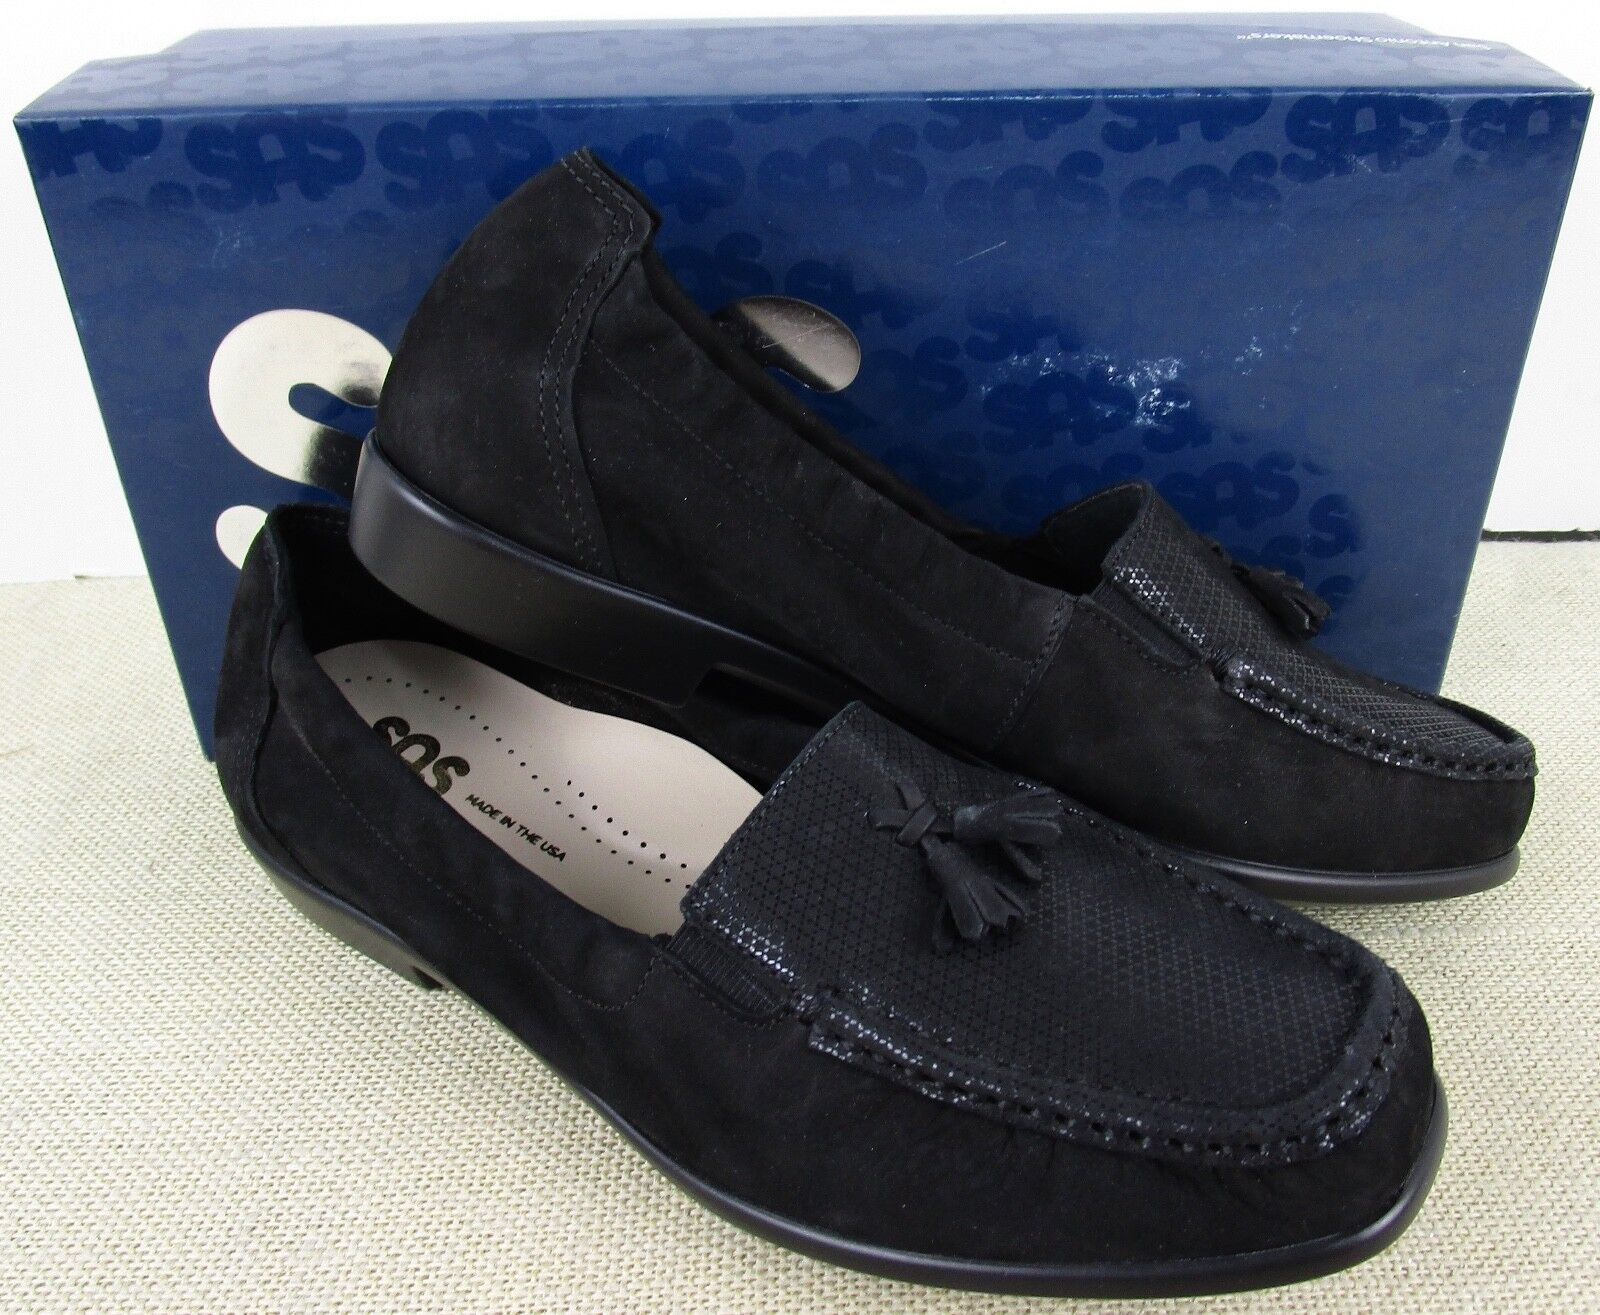 SAS HOPE ONYX WOMEN'S WOMEN'S ONYX BLACK LEATHER SUED PENNY LOAFER SLIP ON SHOES NEW IN BOX b329b6